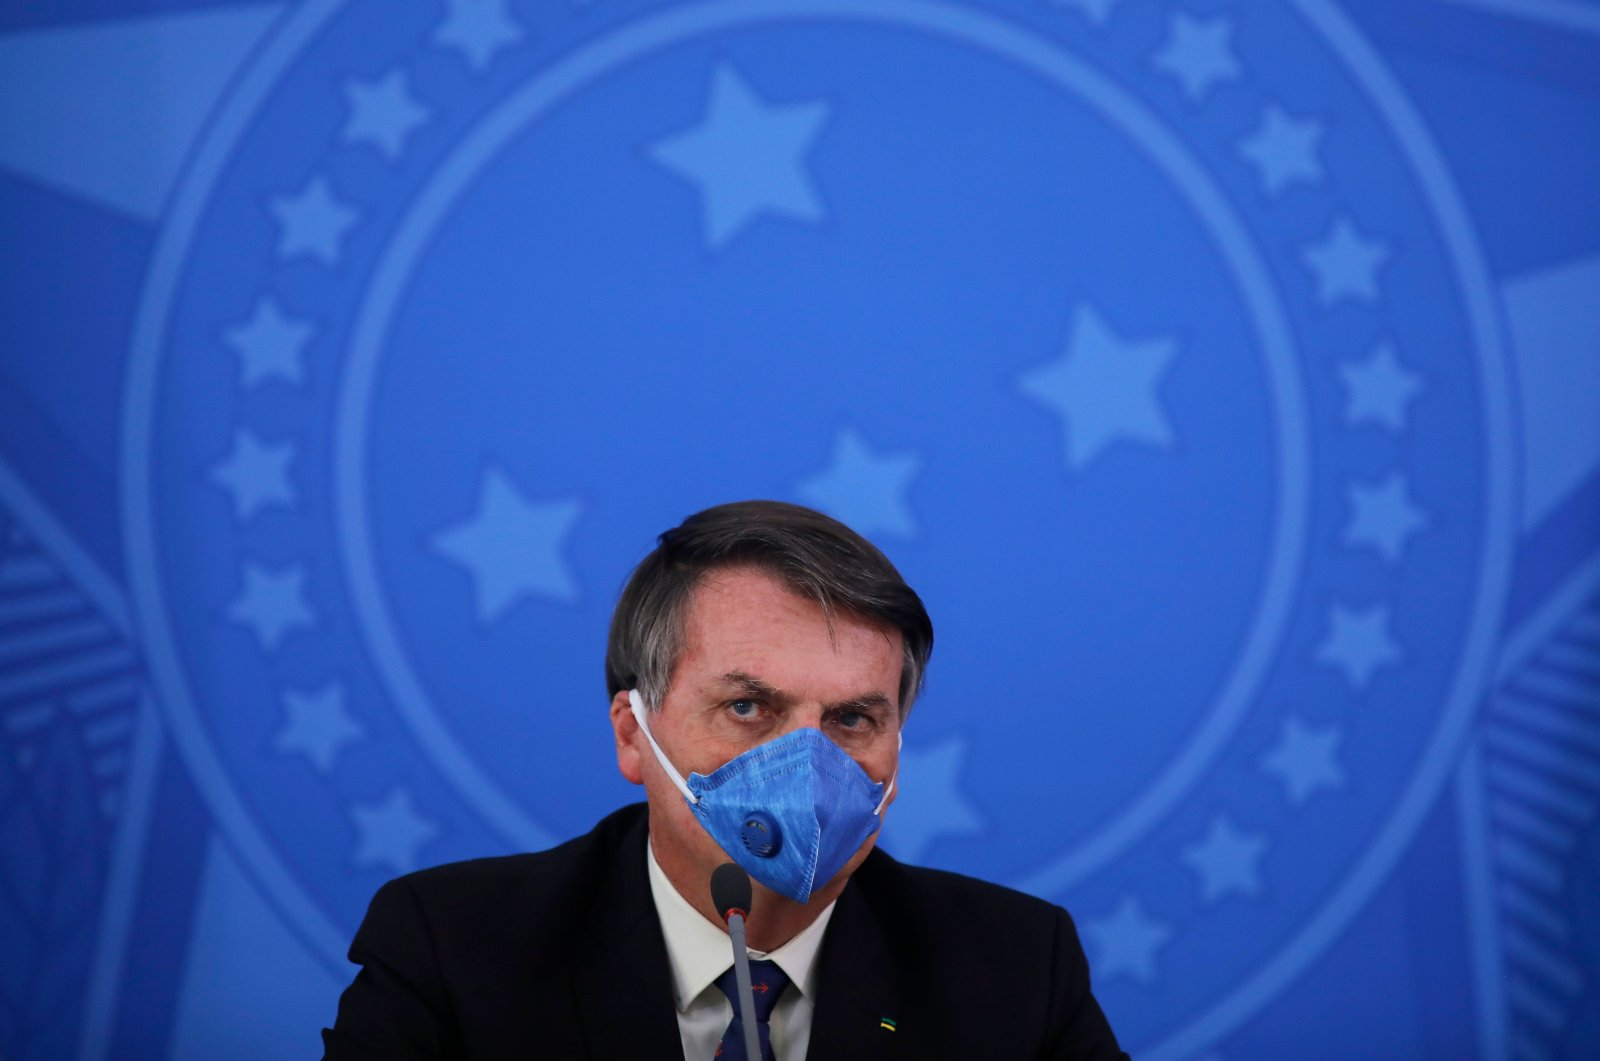 Brazil's President Jair Bolsonaro wears a face mask during a press conference on the coronavirus pandemic at the Planalto Palace in Brasilia, Brazil, March 20, 2020. (AFP Photo)